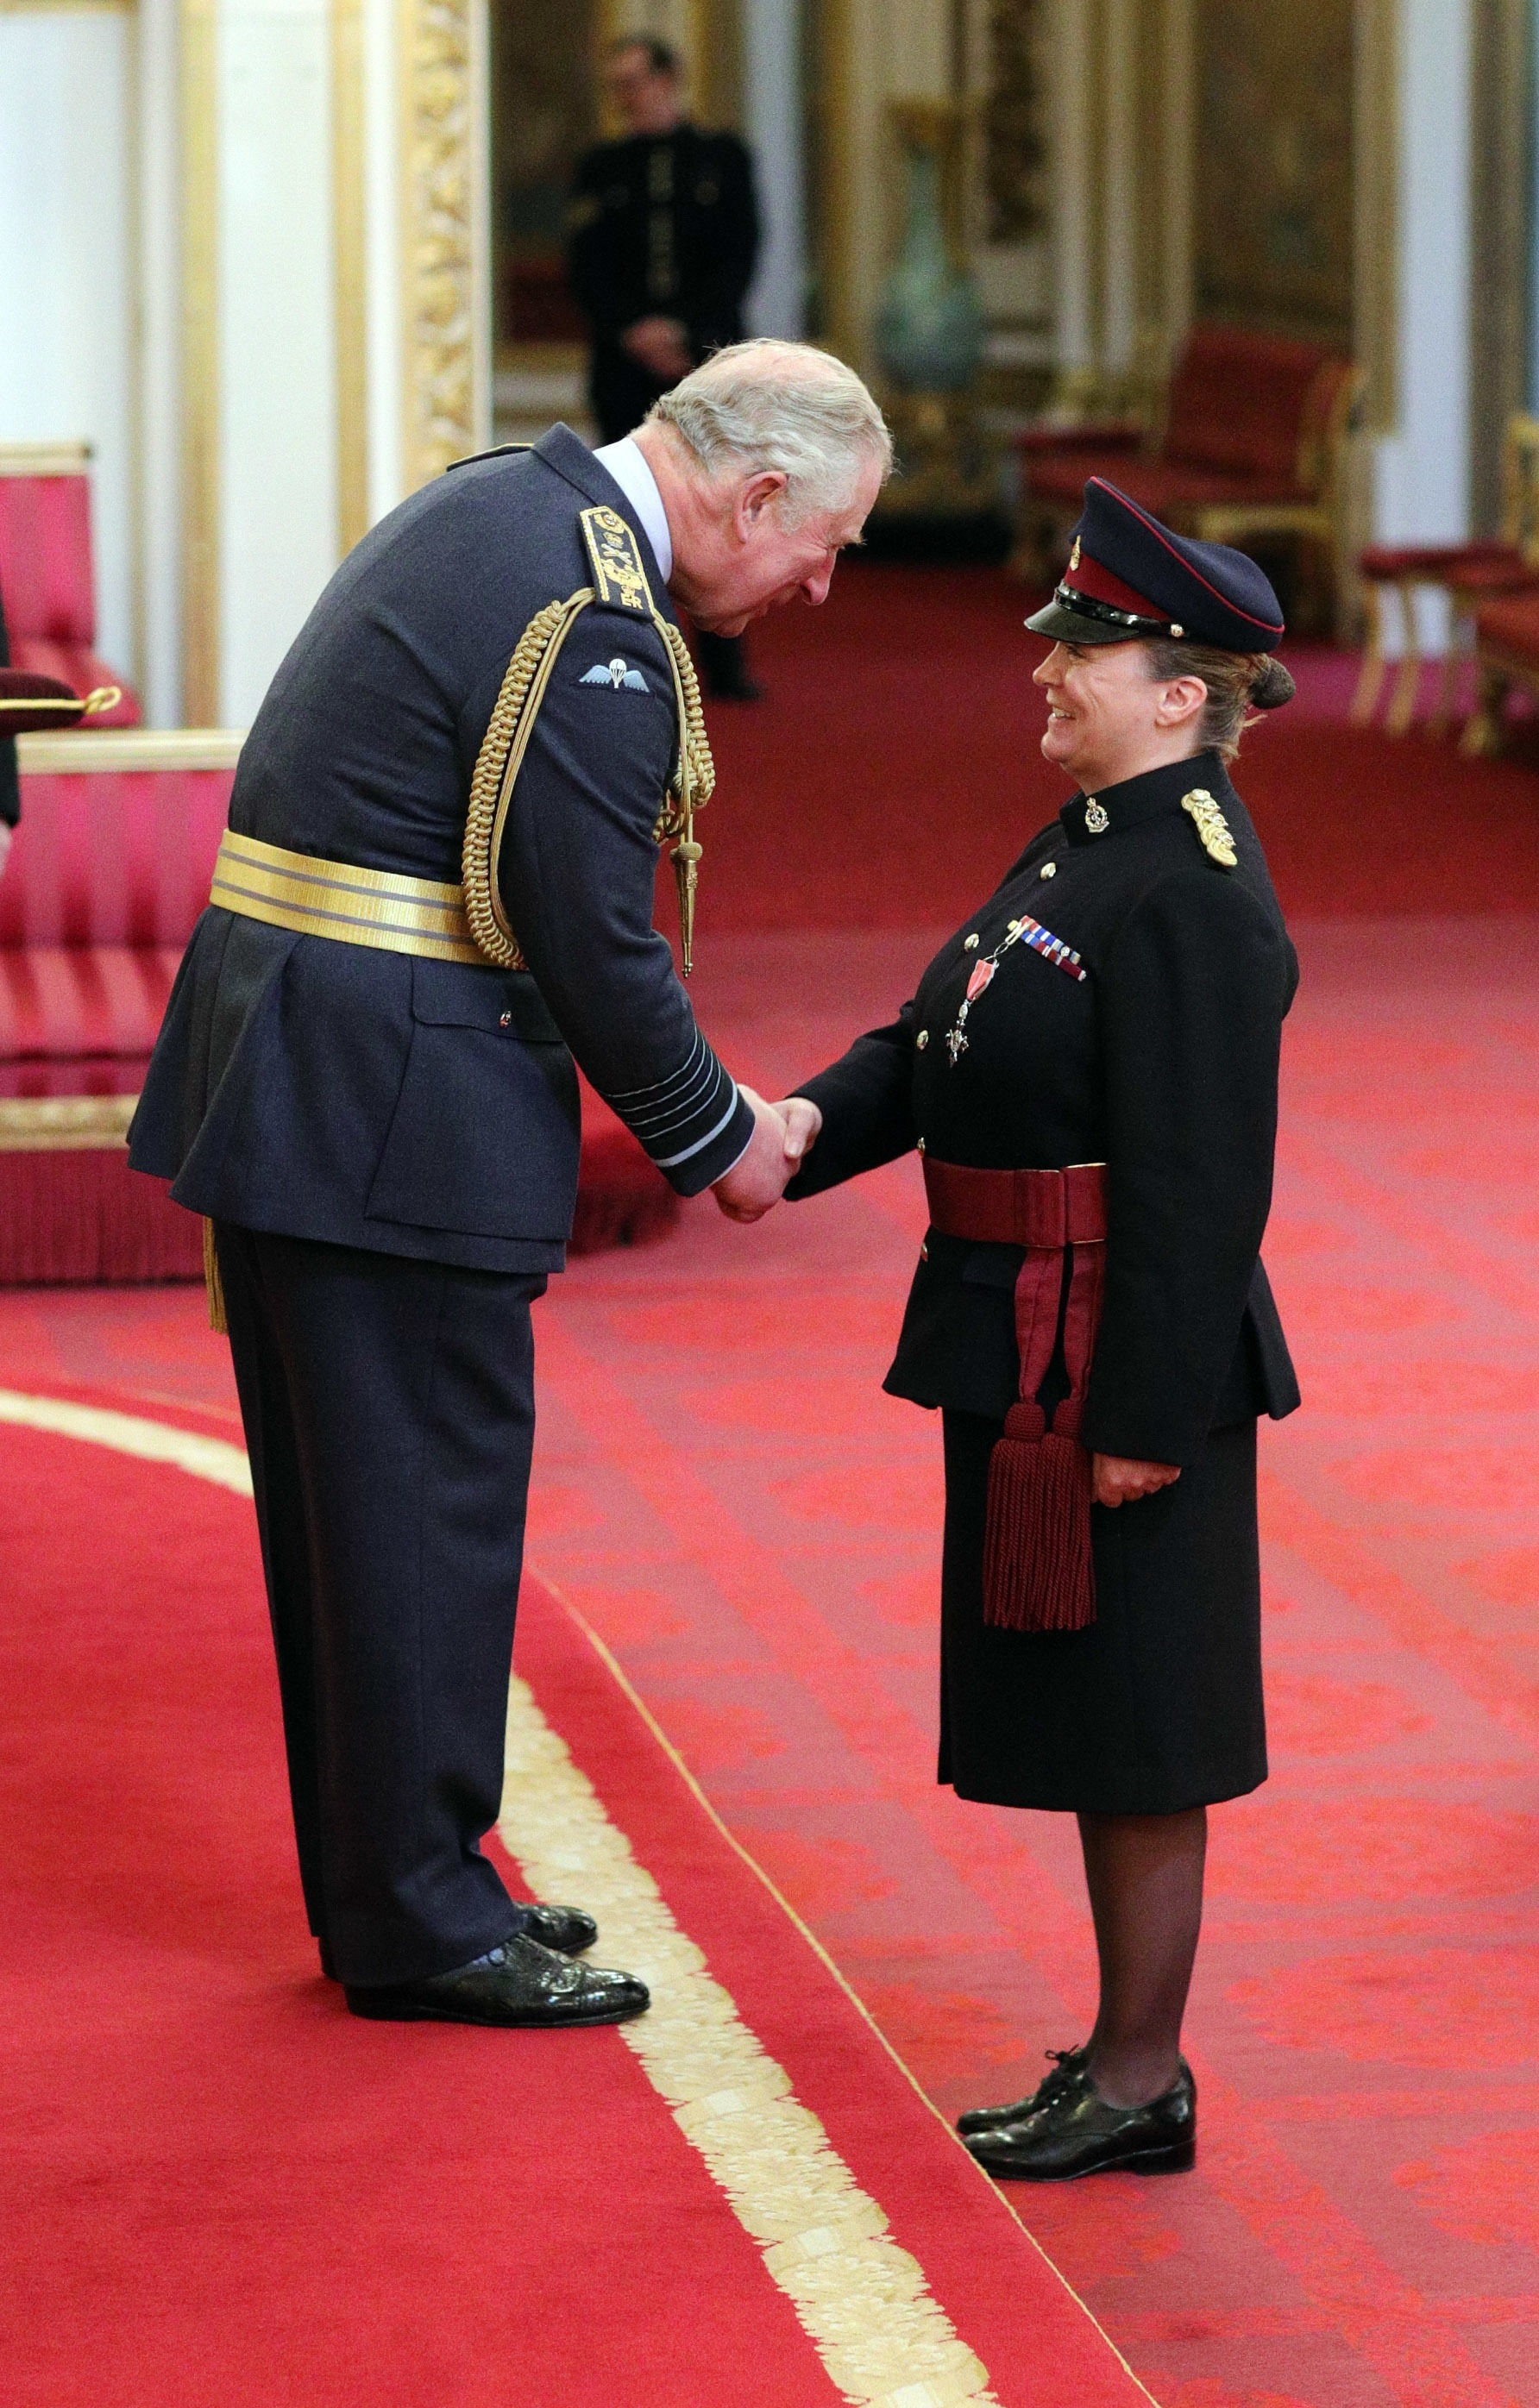 ARMY HONOUR: Melonie Adair visited Buckingham Palace to receive her MBE